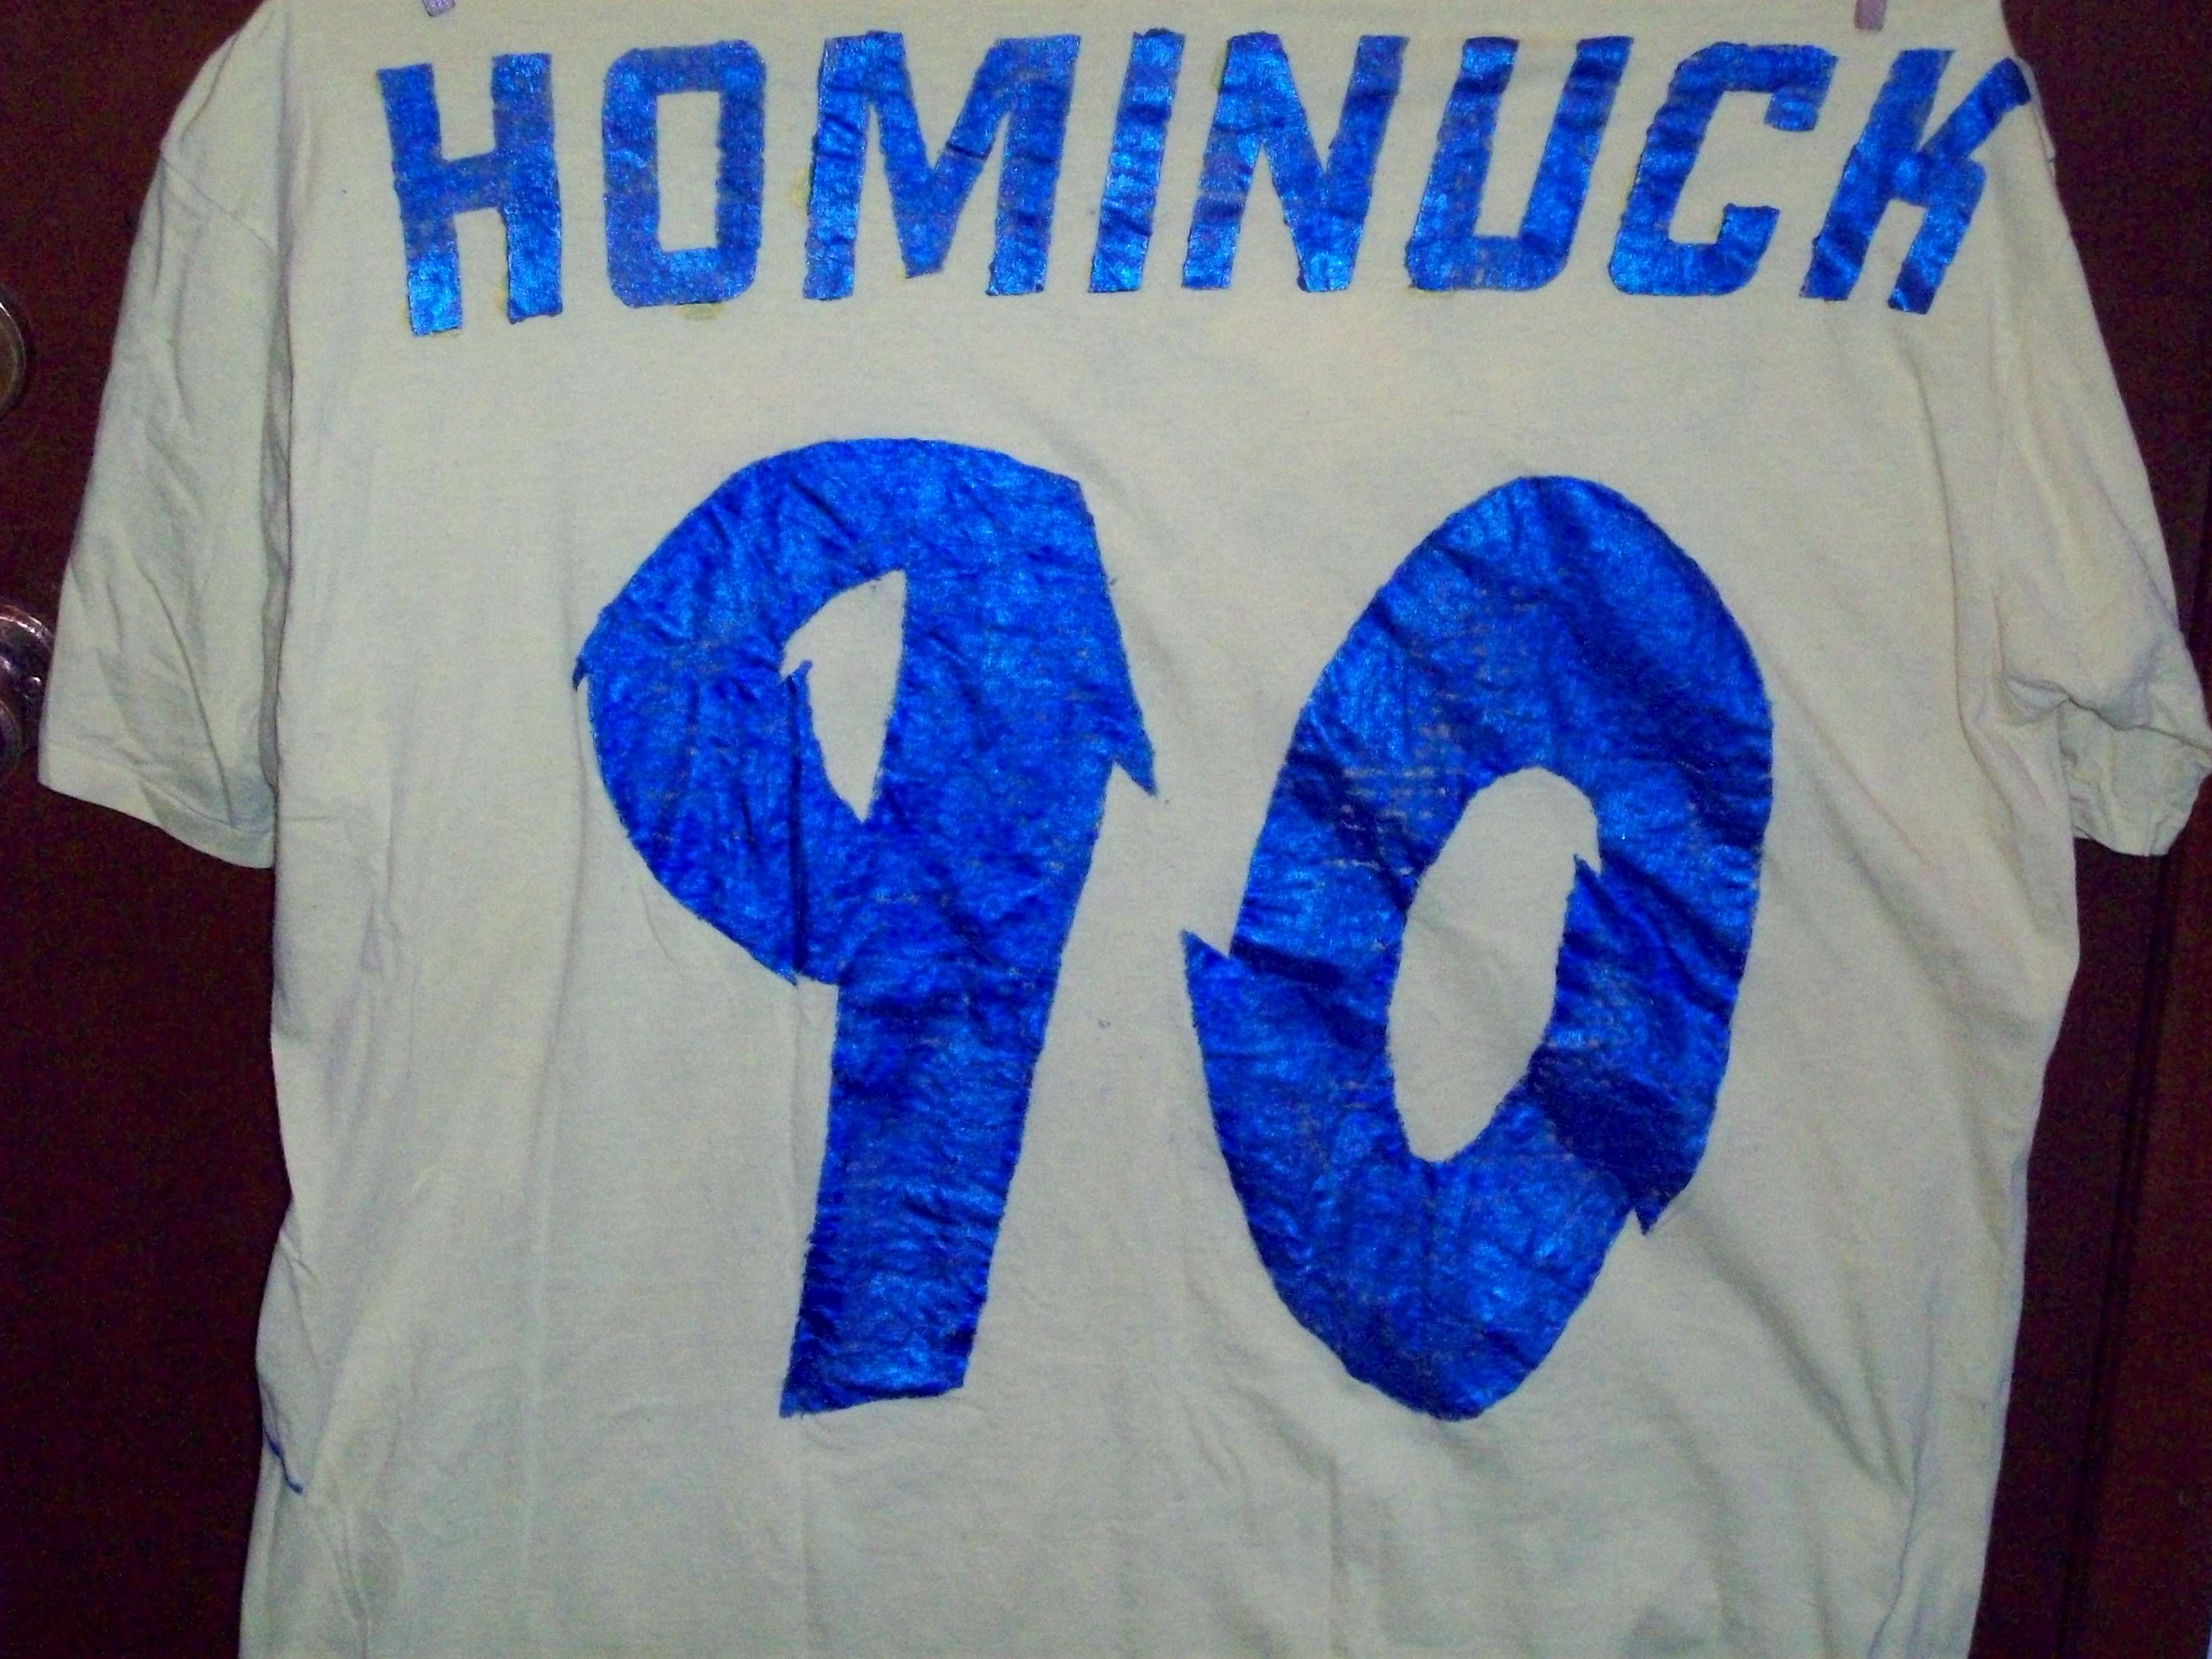 90 - Mike Hominuck